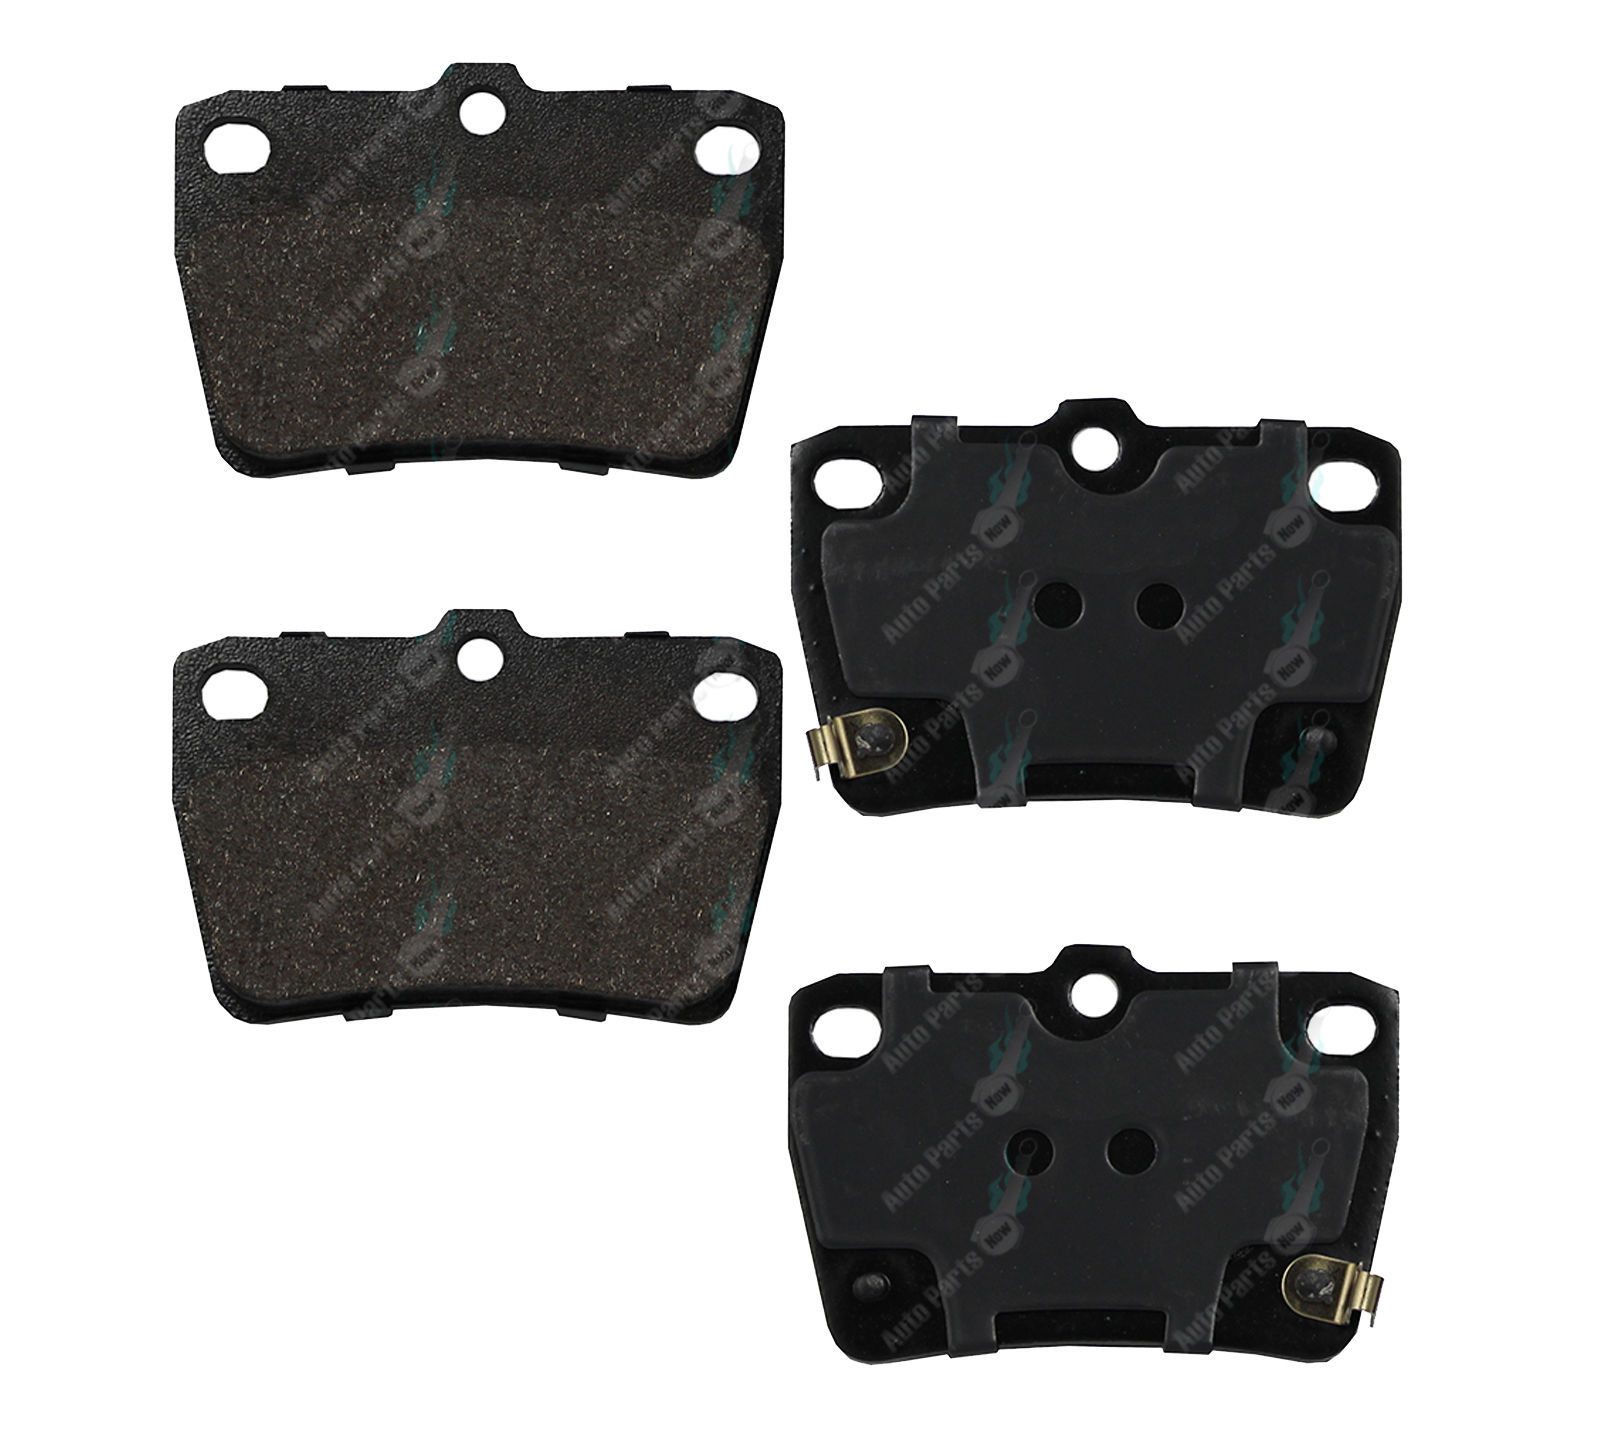 Details about Disc Brake Pads Rear DB1680 for Chery Tiggo SUV Toyota Rav4  2 0 4WD 3D & 5D